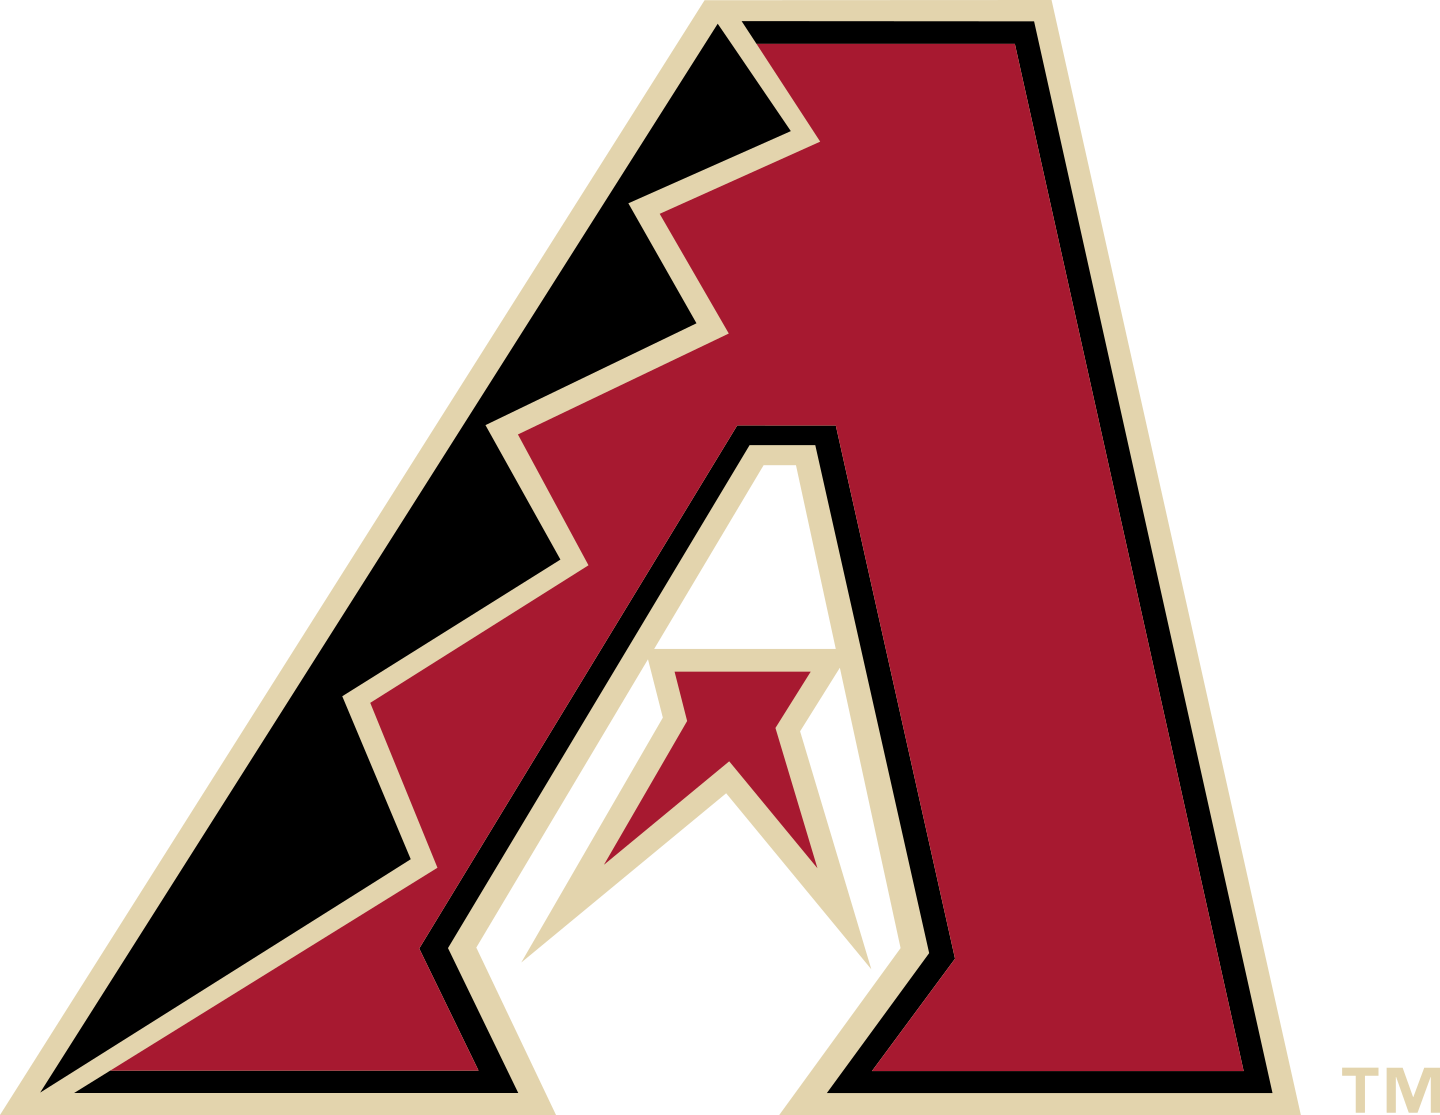 arizona diamondbacks logo 2 - Arizona Diamondbacks Logo